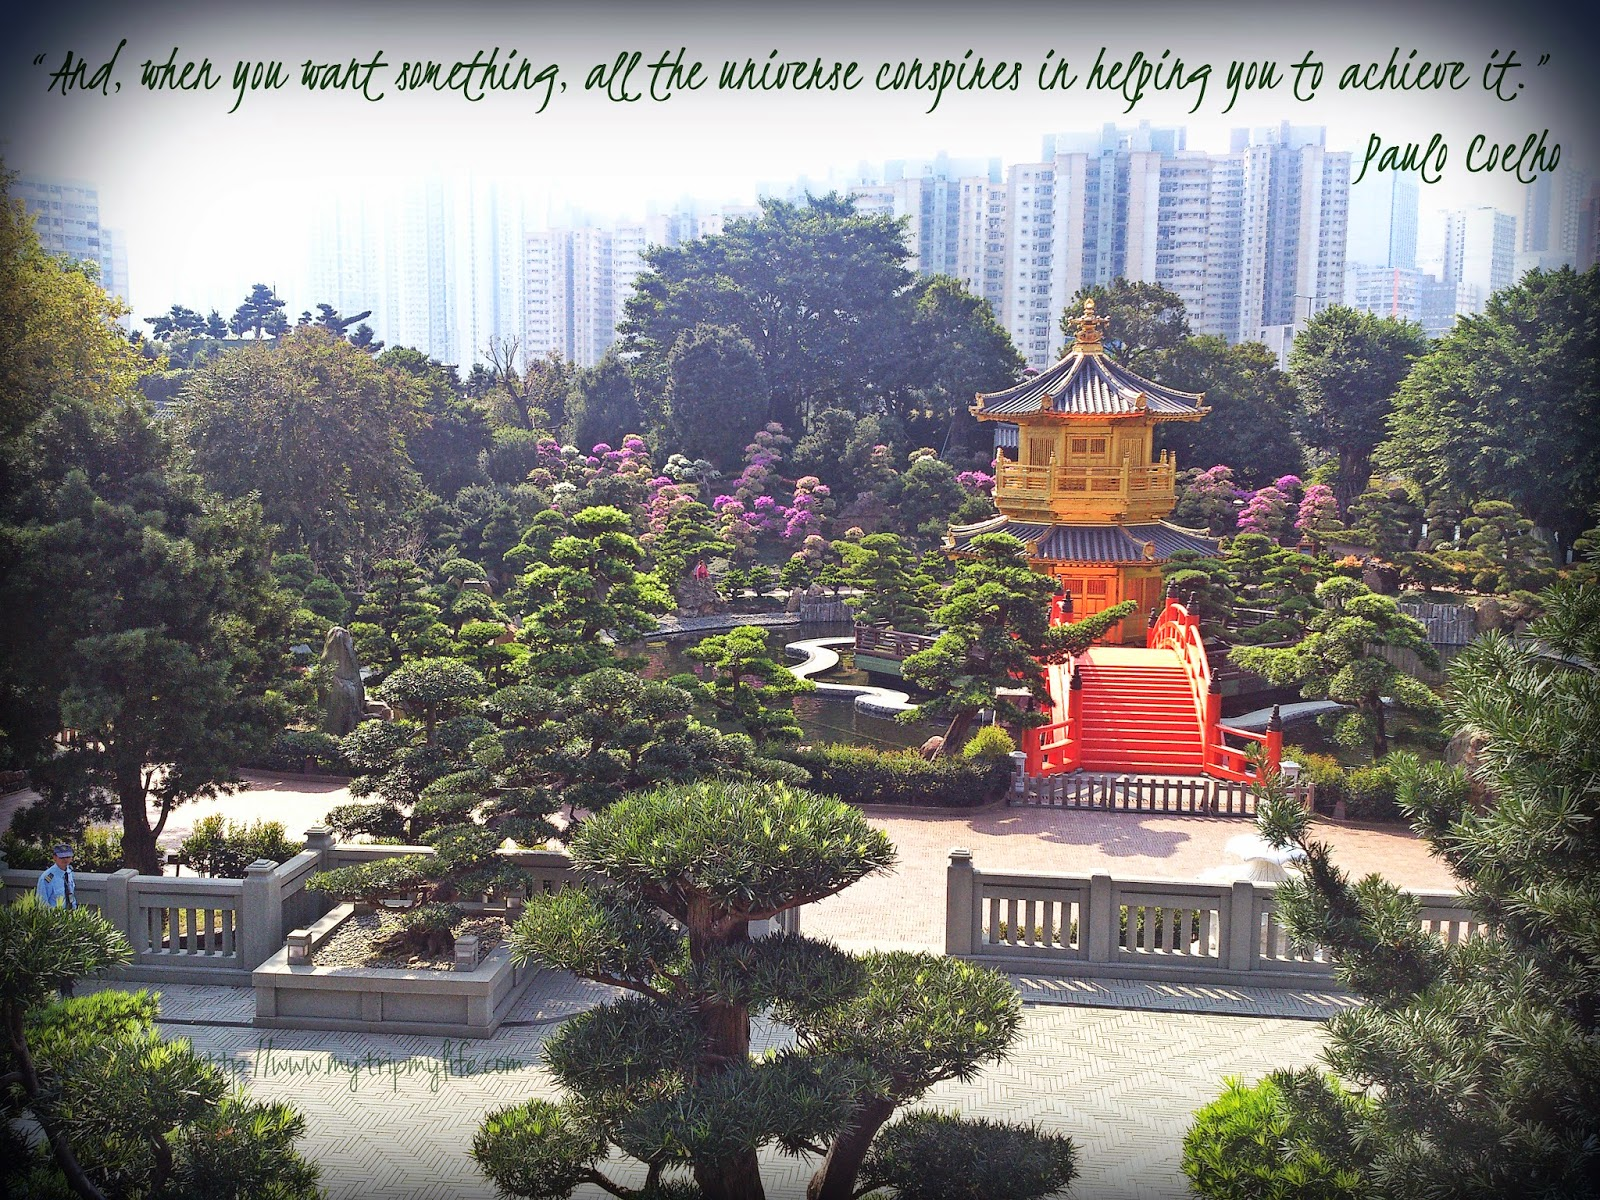 my trip my life nan lian garden nan lian garden is one of the top 10 must see places in hongkong simply because it is an amazing place in the middle of modern structures surrounding it